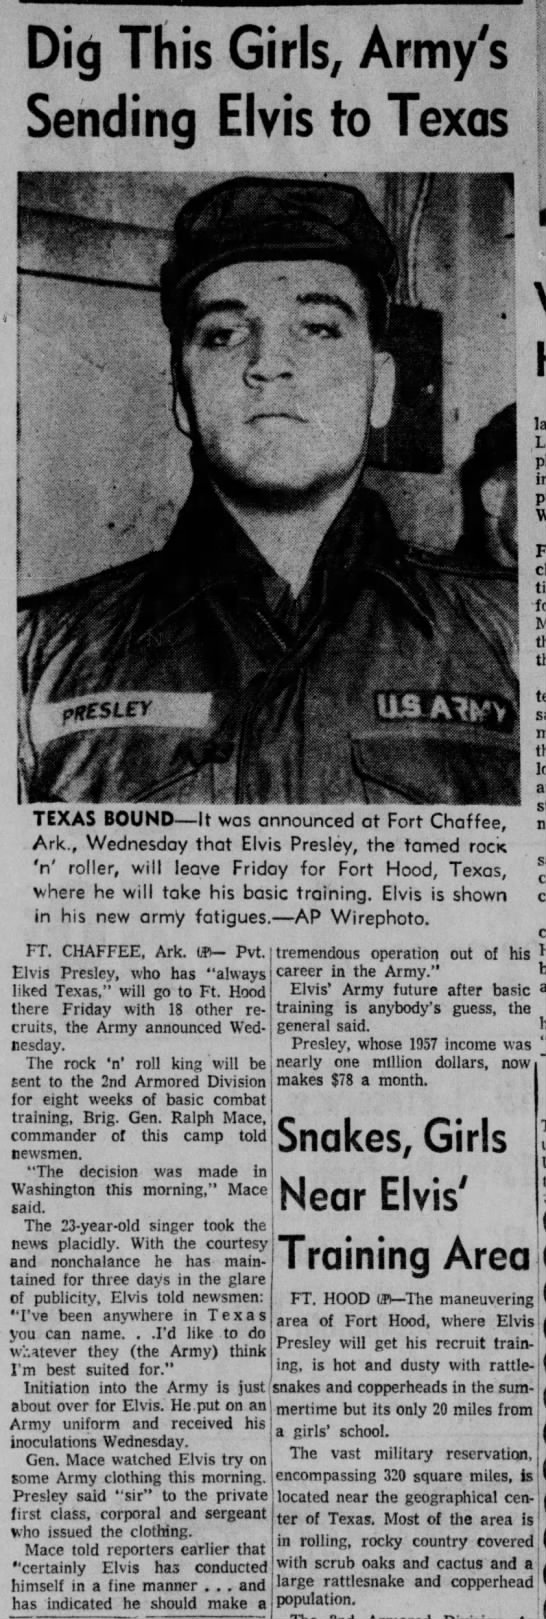 Elvis to be sent to Ft. Hood -